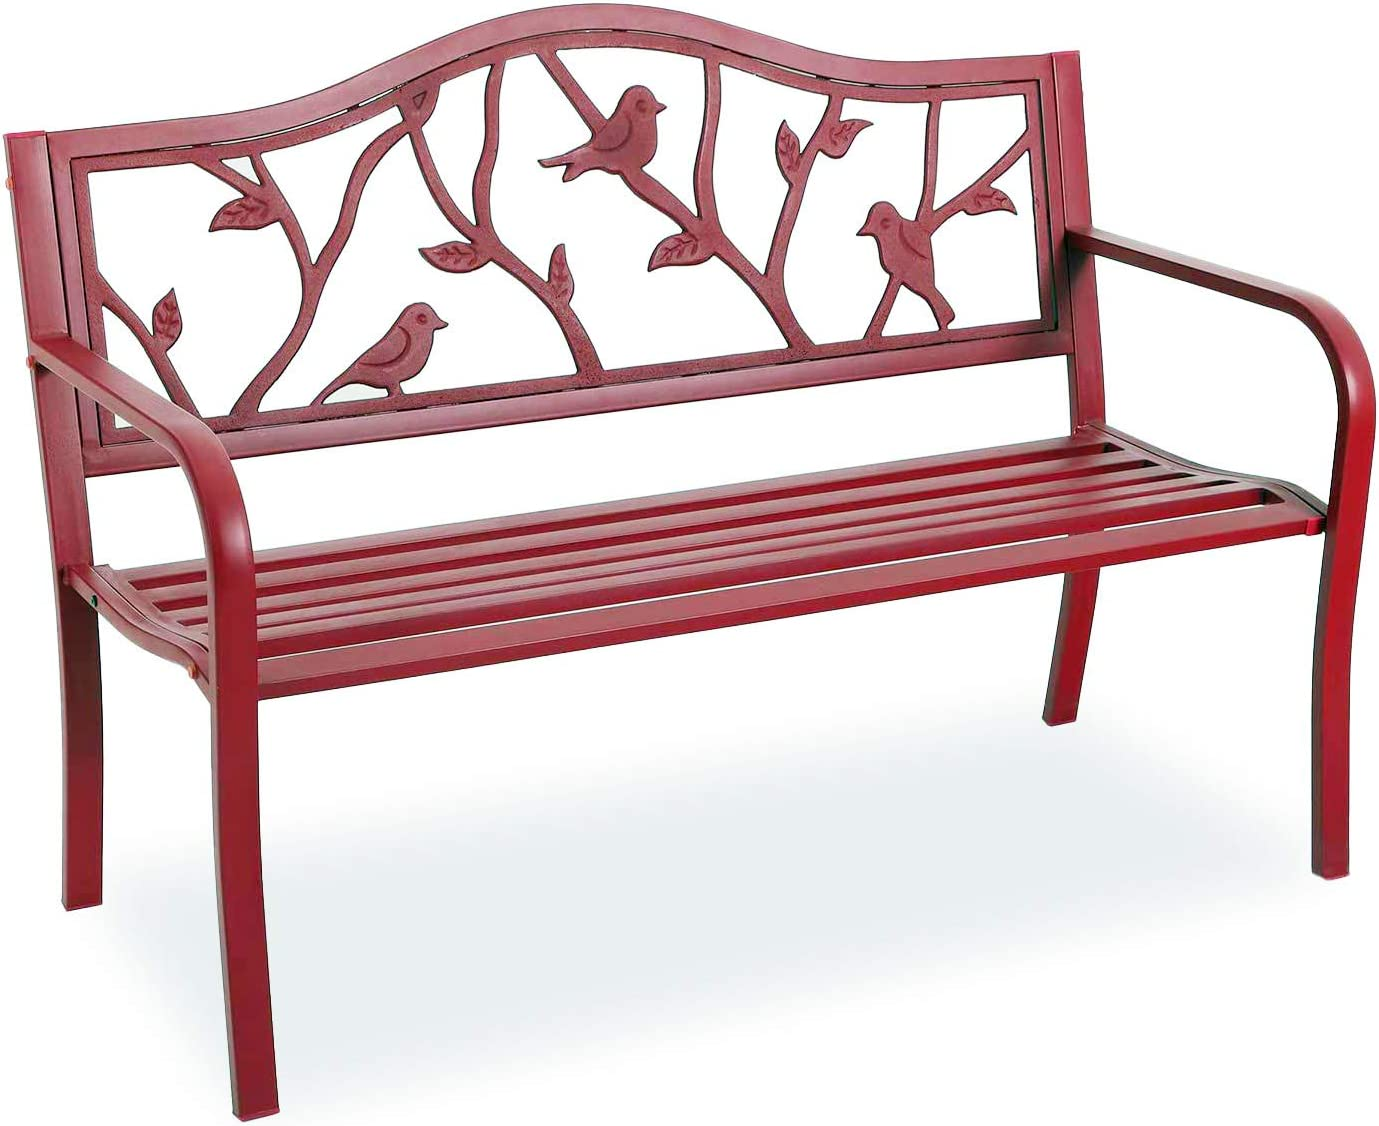 """PHI VILLA Outdoor Garden Bench, 50"""" Steel Long Red Patio Bench for Yard, Lawn, Balcony, Porch, Red Bird Modern Bench with Backrest and Armrests"""